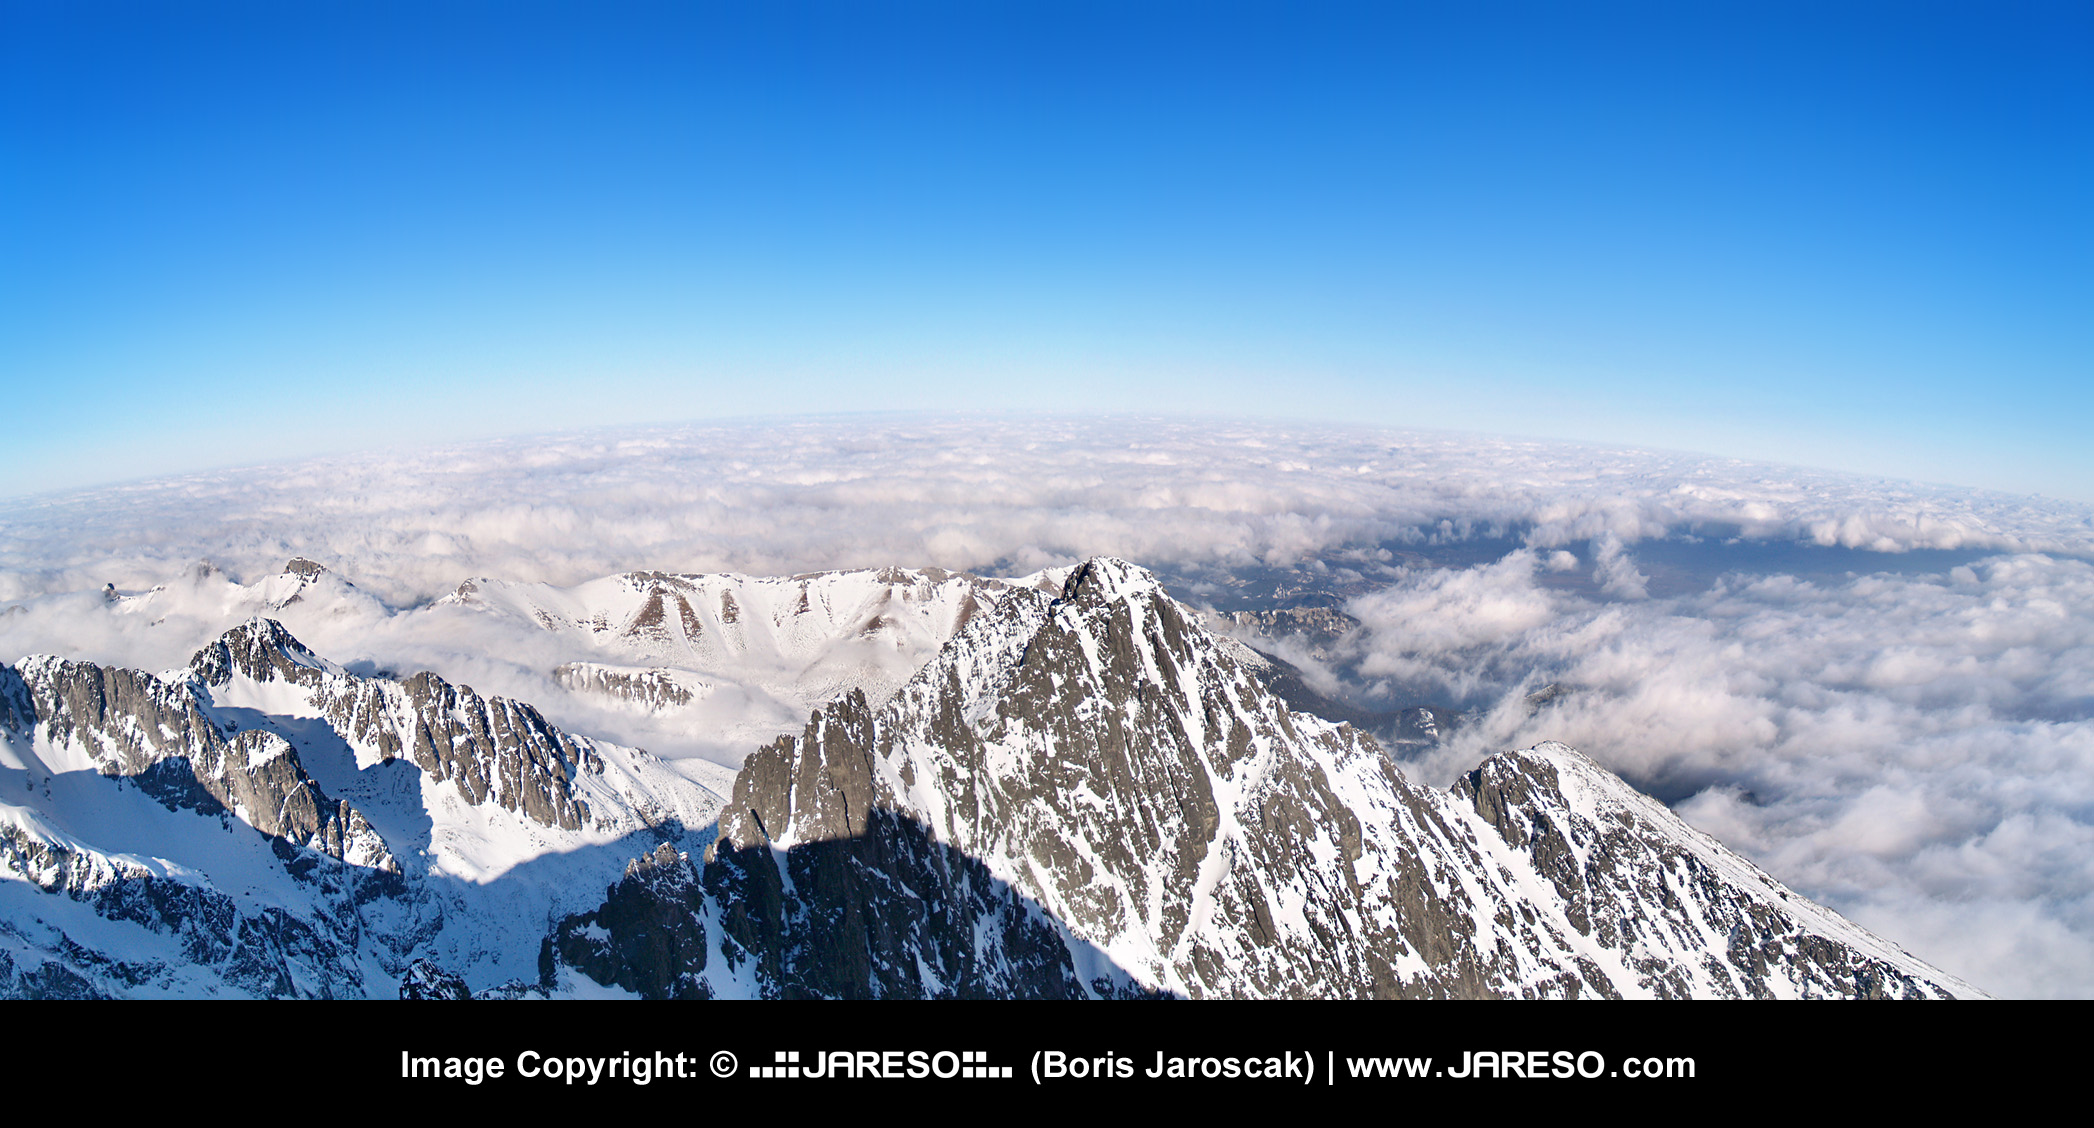 A panoramic view from one of the most famous peaks in the heart of Europe.